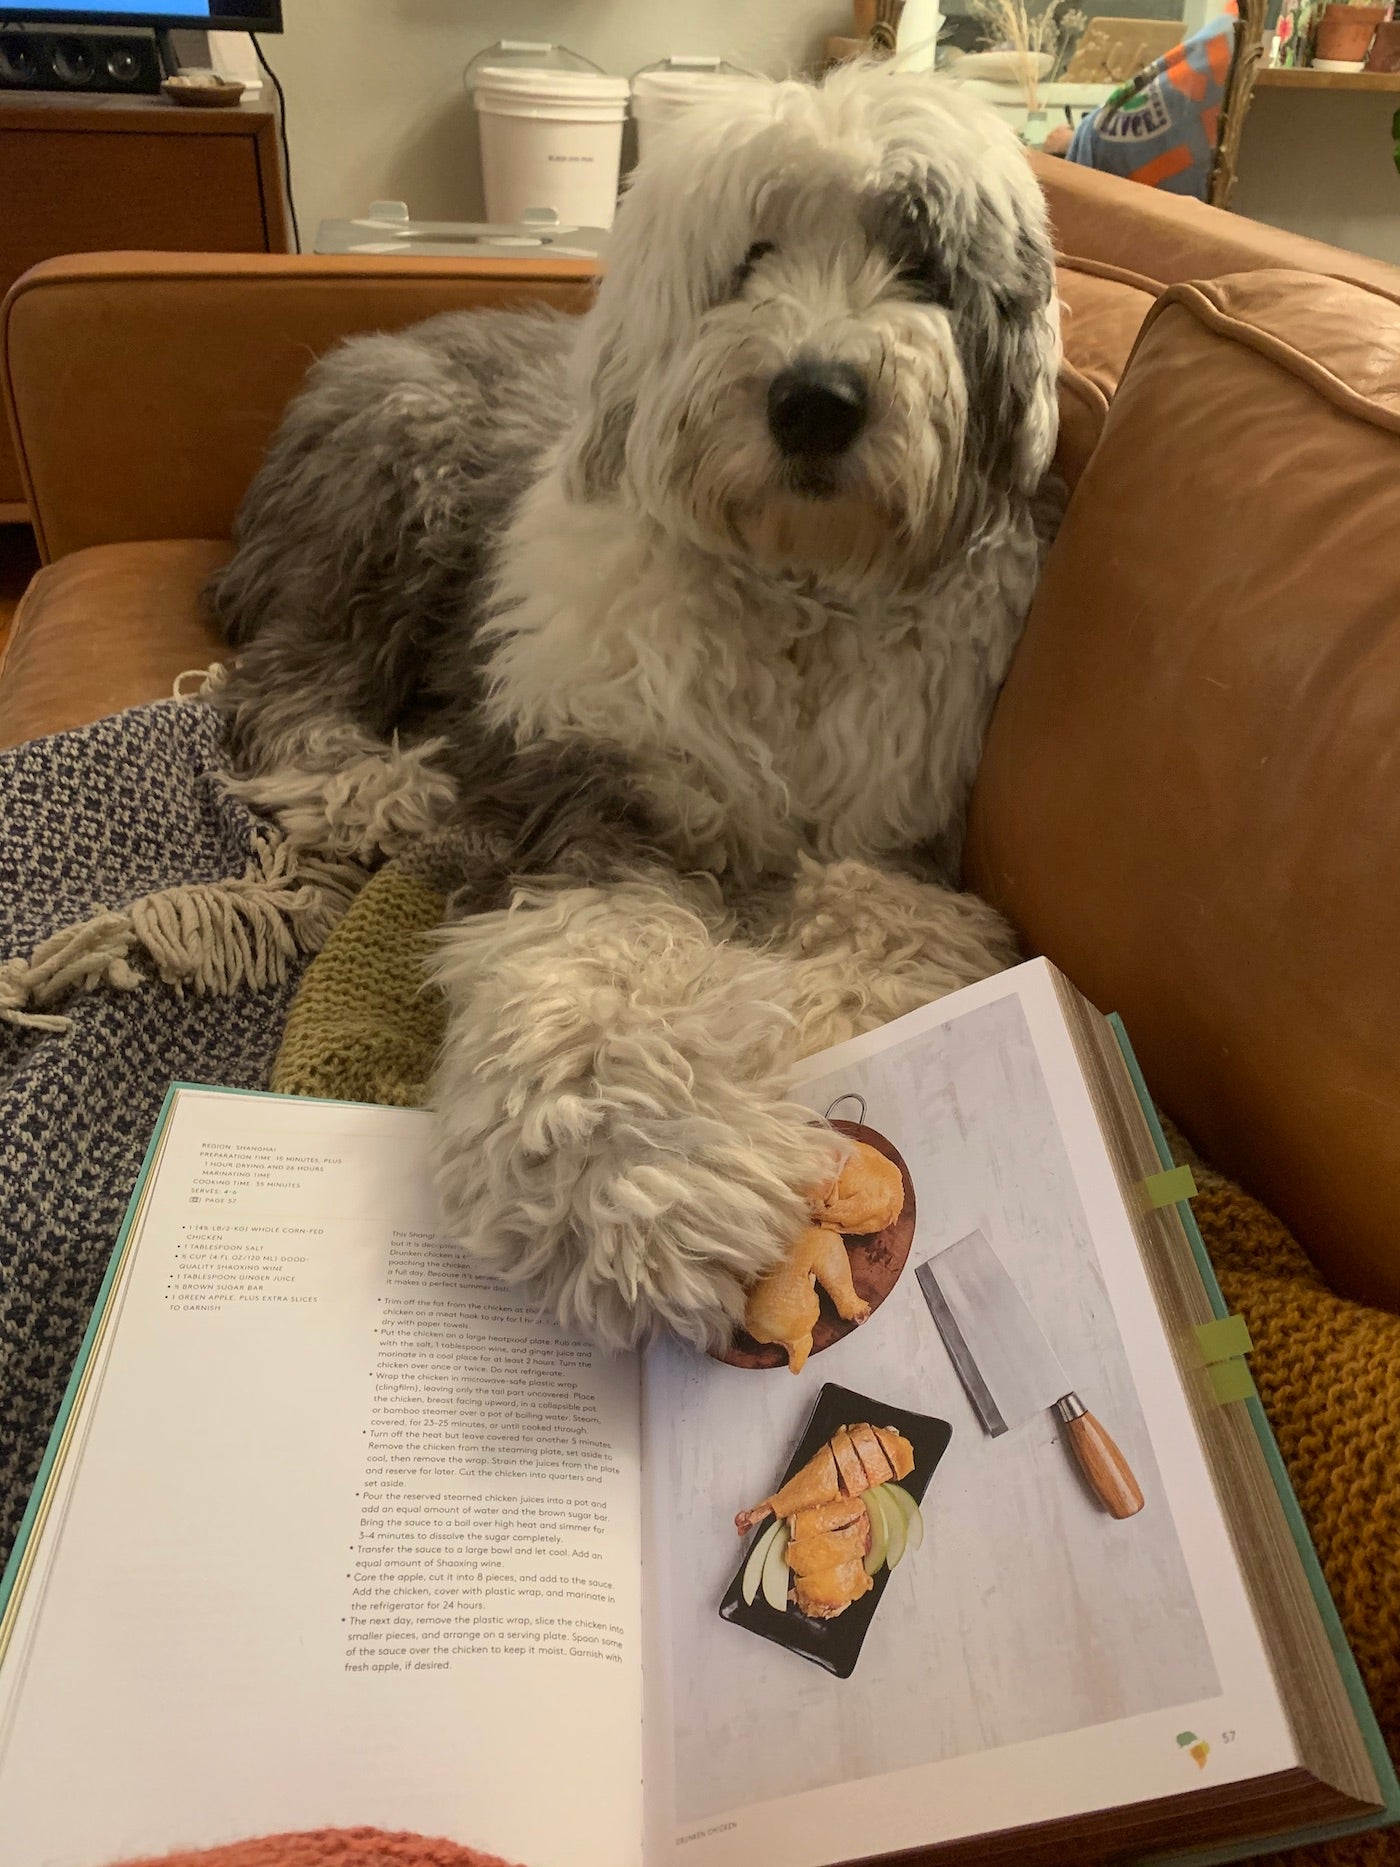 Sheepdog with book